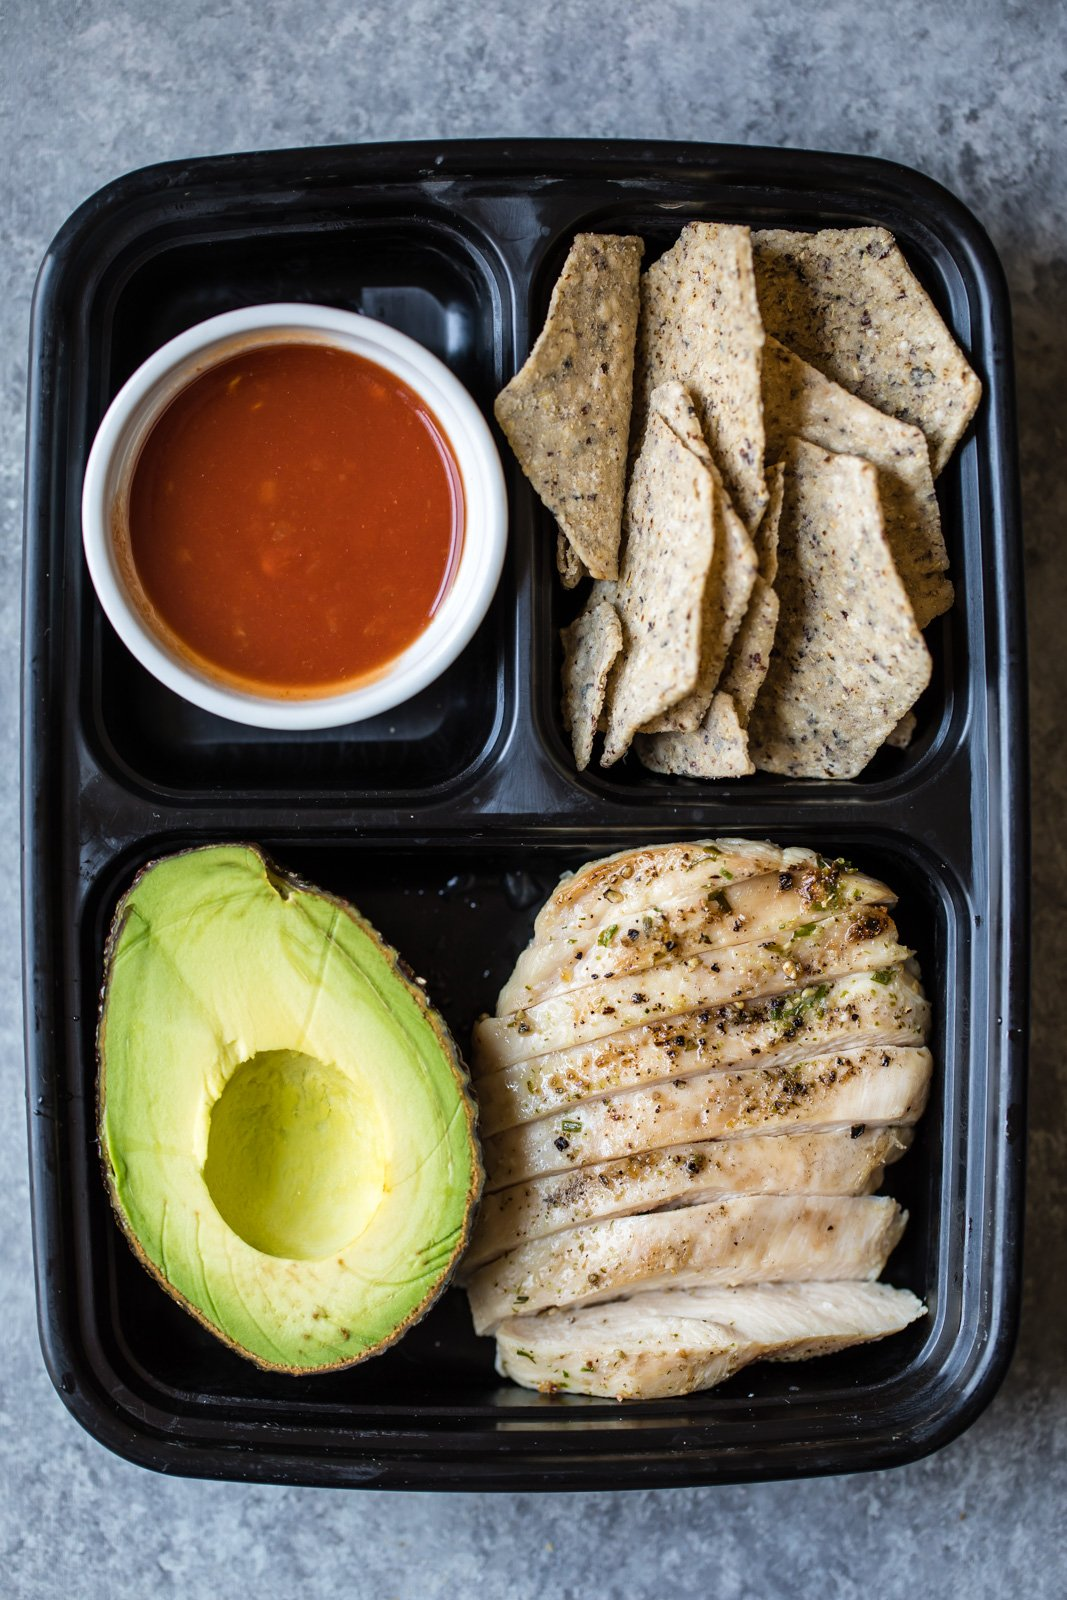 CHICKEN + TORTILLA CHIPS SALSA AVOCADO 4 Easy Protein Packed Bento Boxes | Ambitious Kitchen